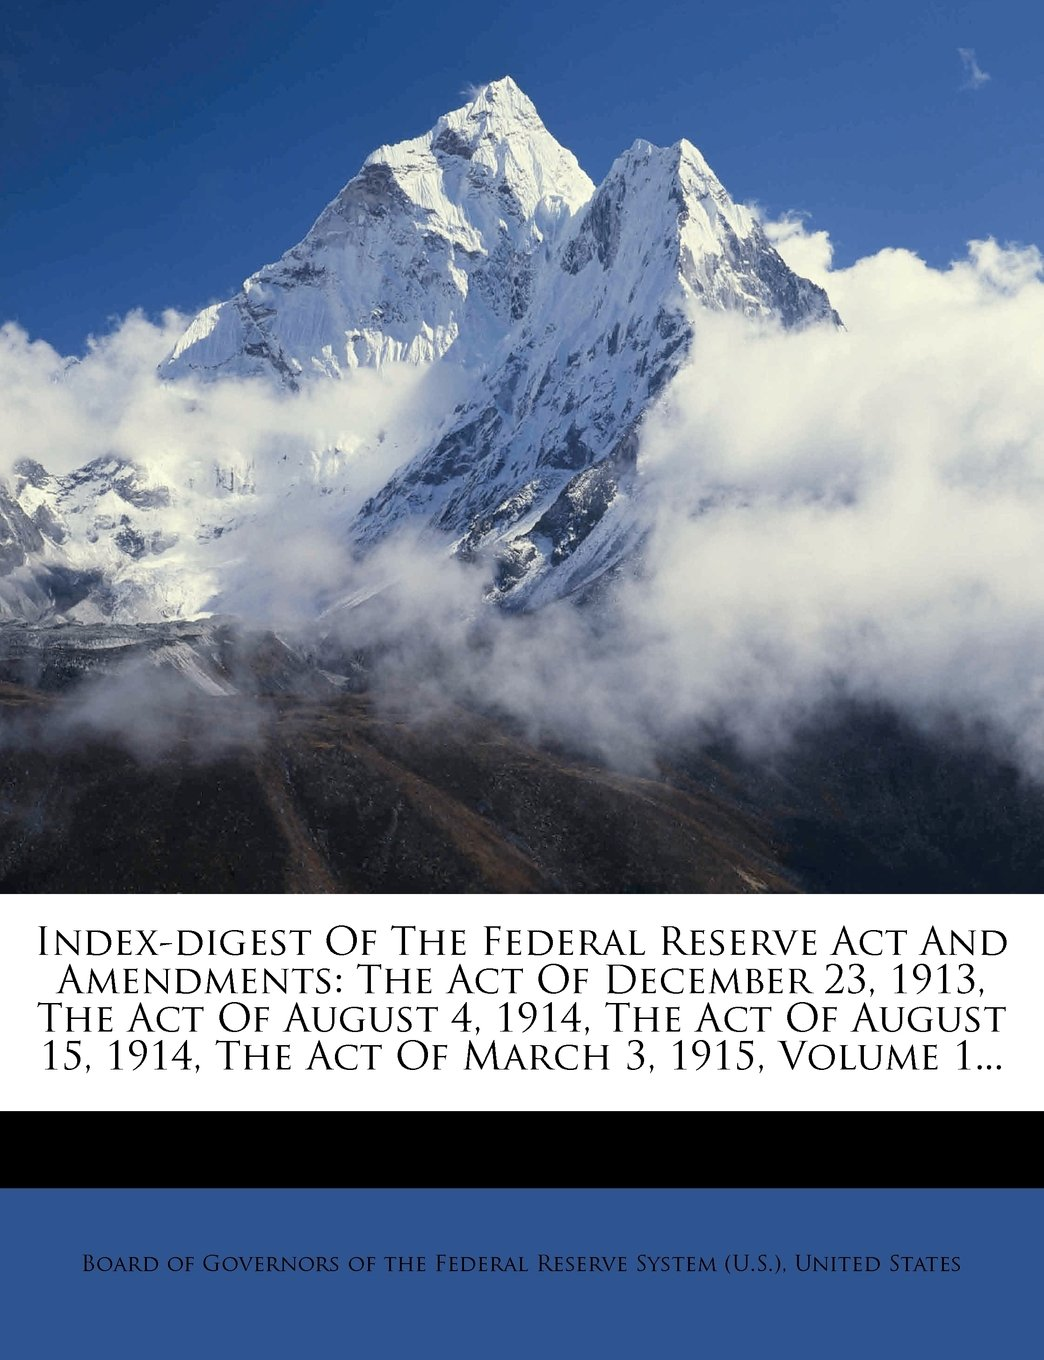 Download Index-Digest of the Federal Reserve ACT and Amendments: The Act of December 23, 1913, the Act of August 4, 1914, the Act of August 15, 1914, the ACT O PDF